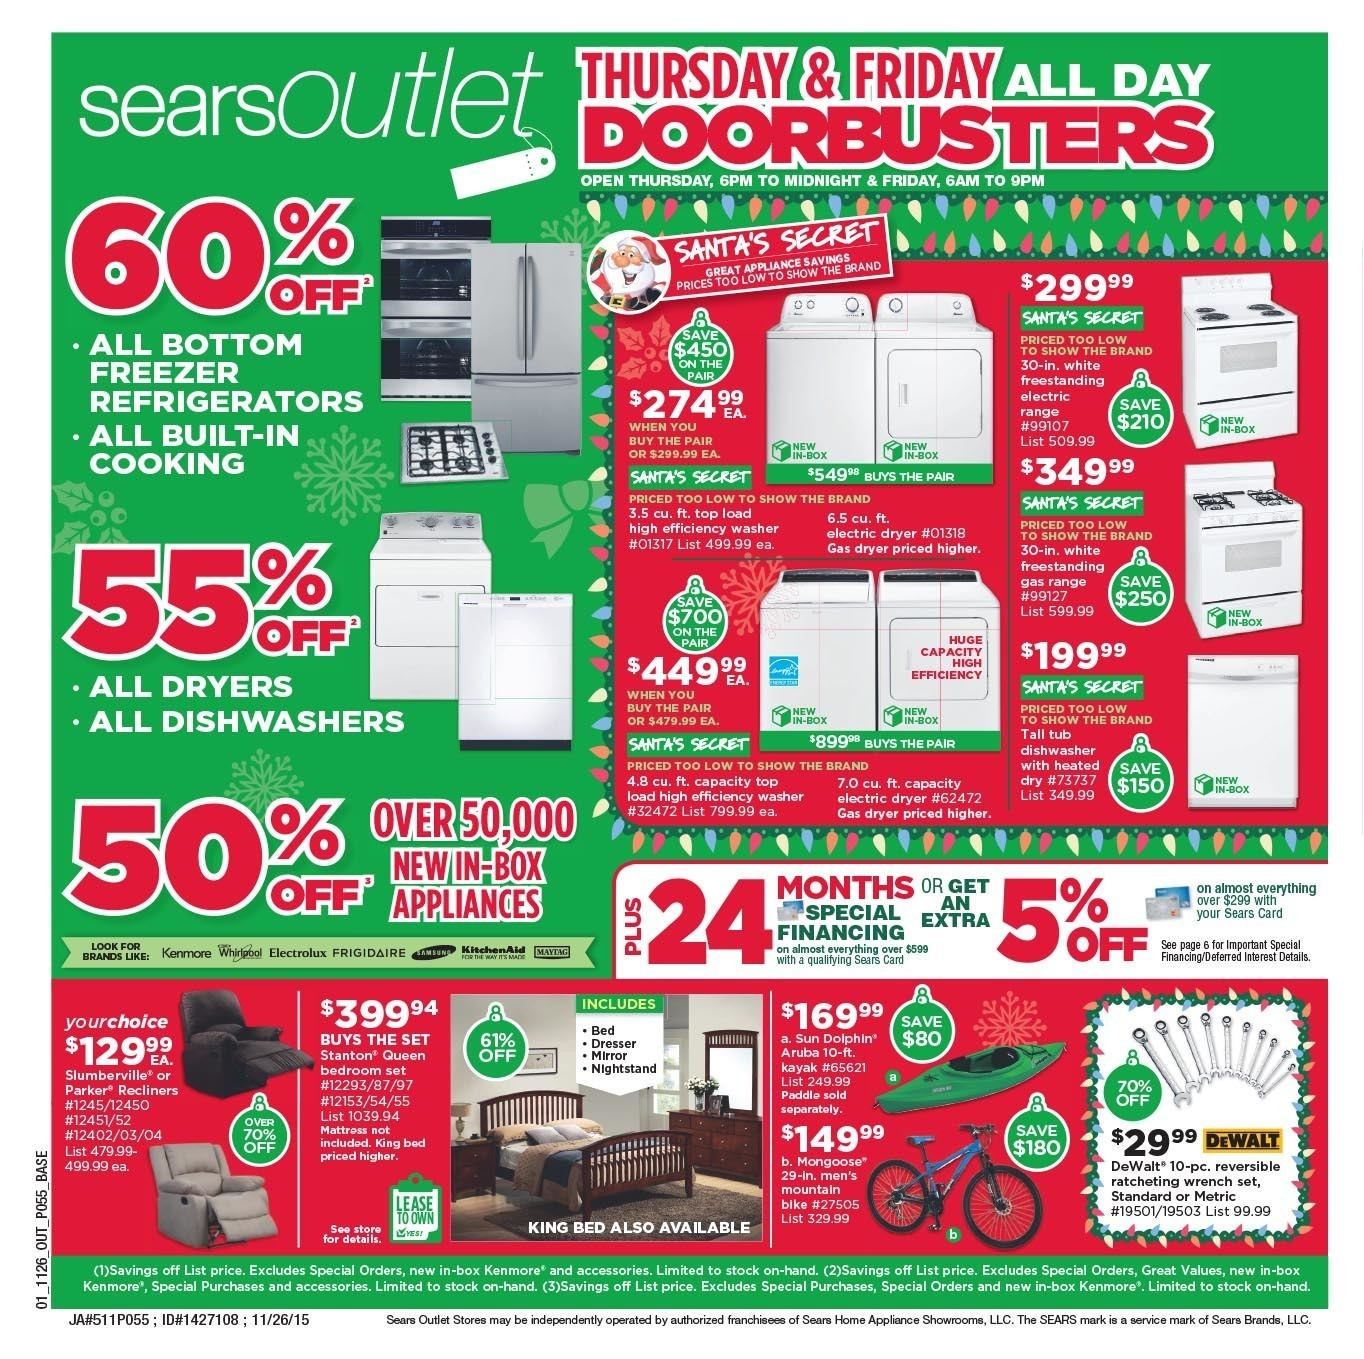 Sears Outlet Black Friday 2015 Ad Page 1